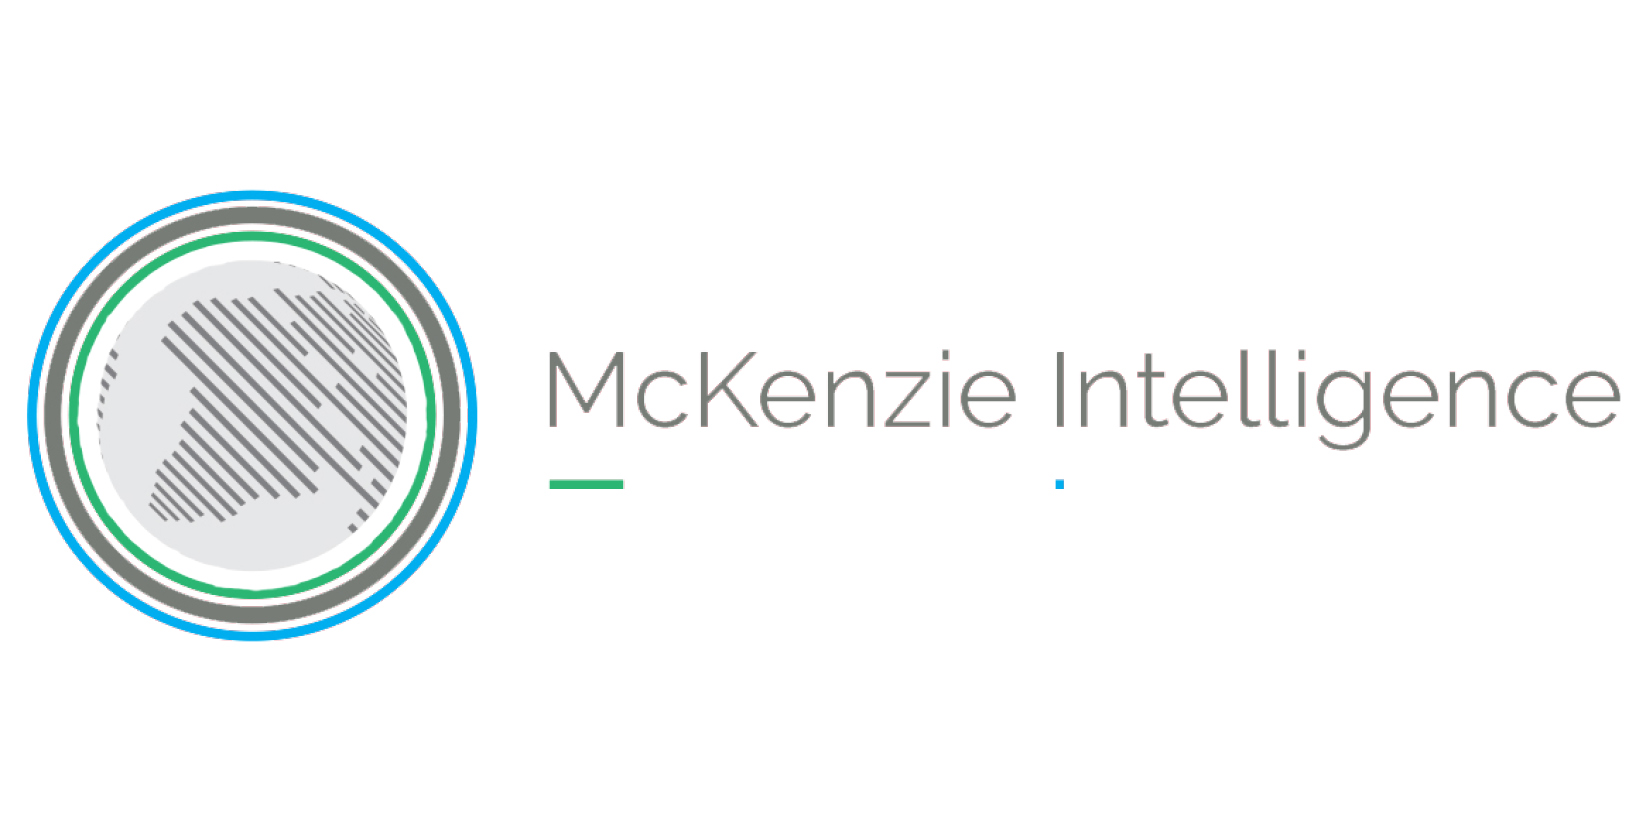 McKenzie Intelligence